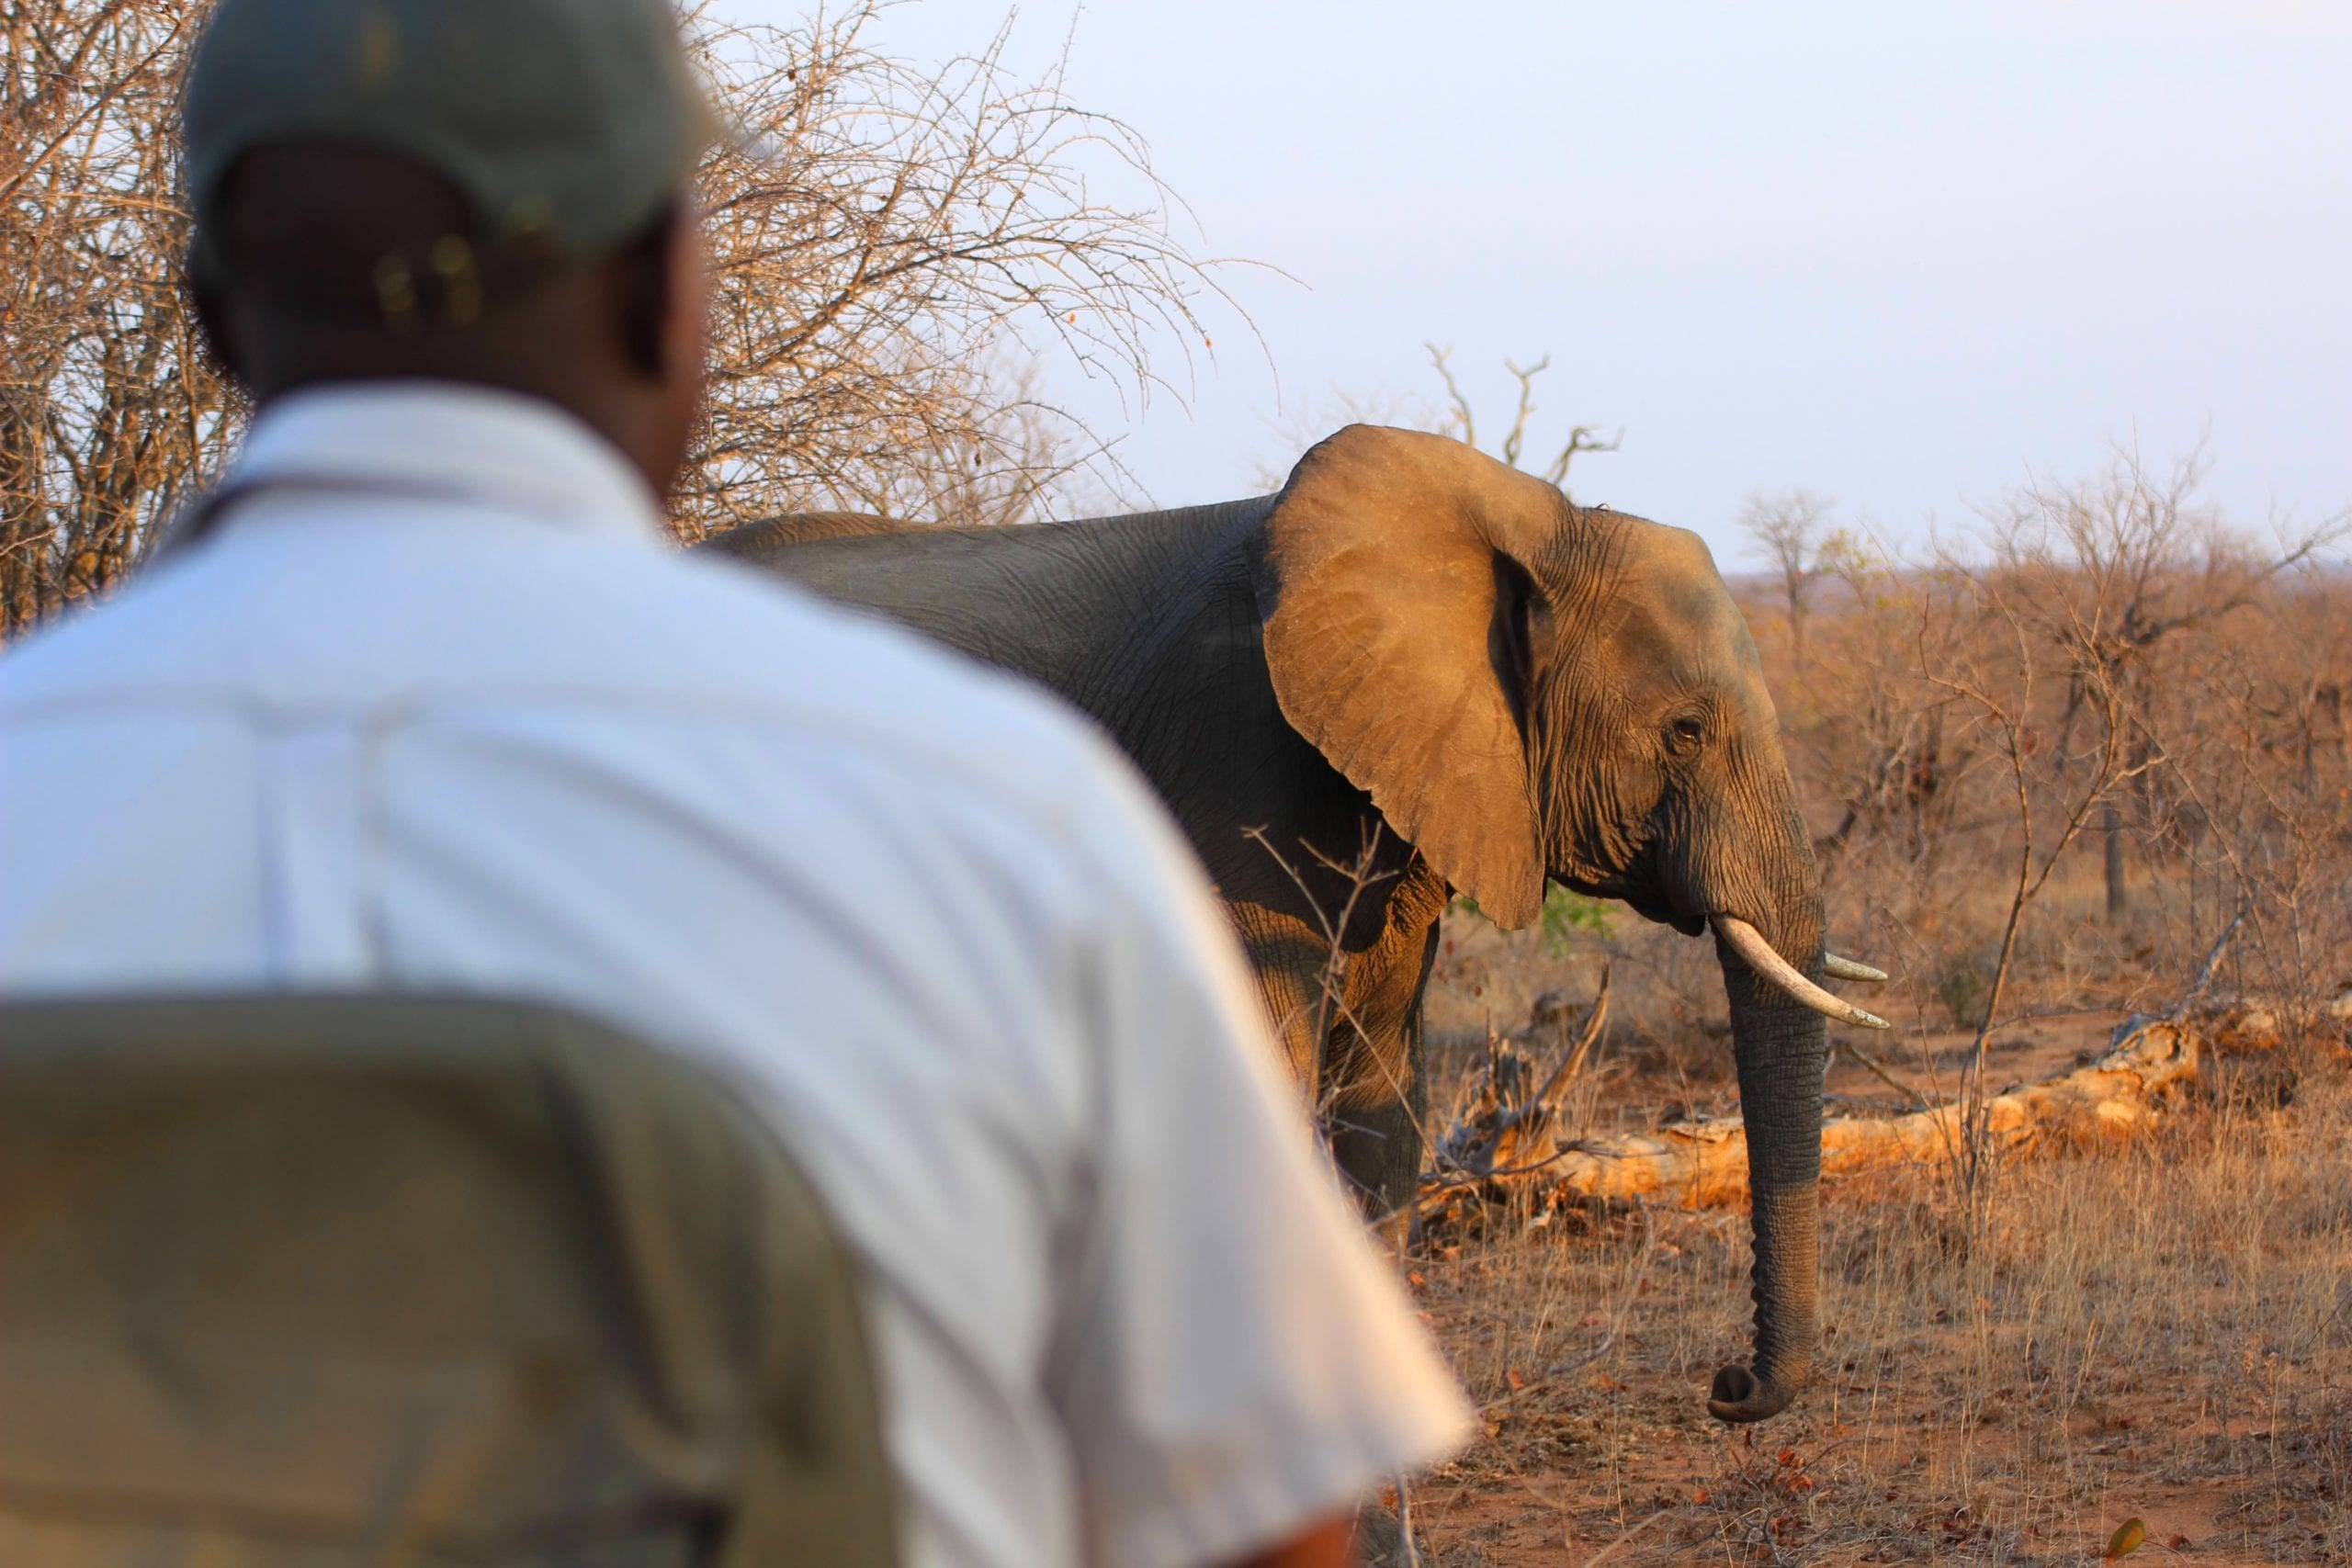 Field ranger checking up on elephant at sunset